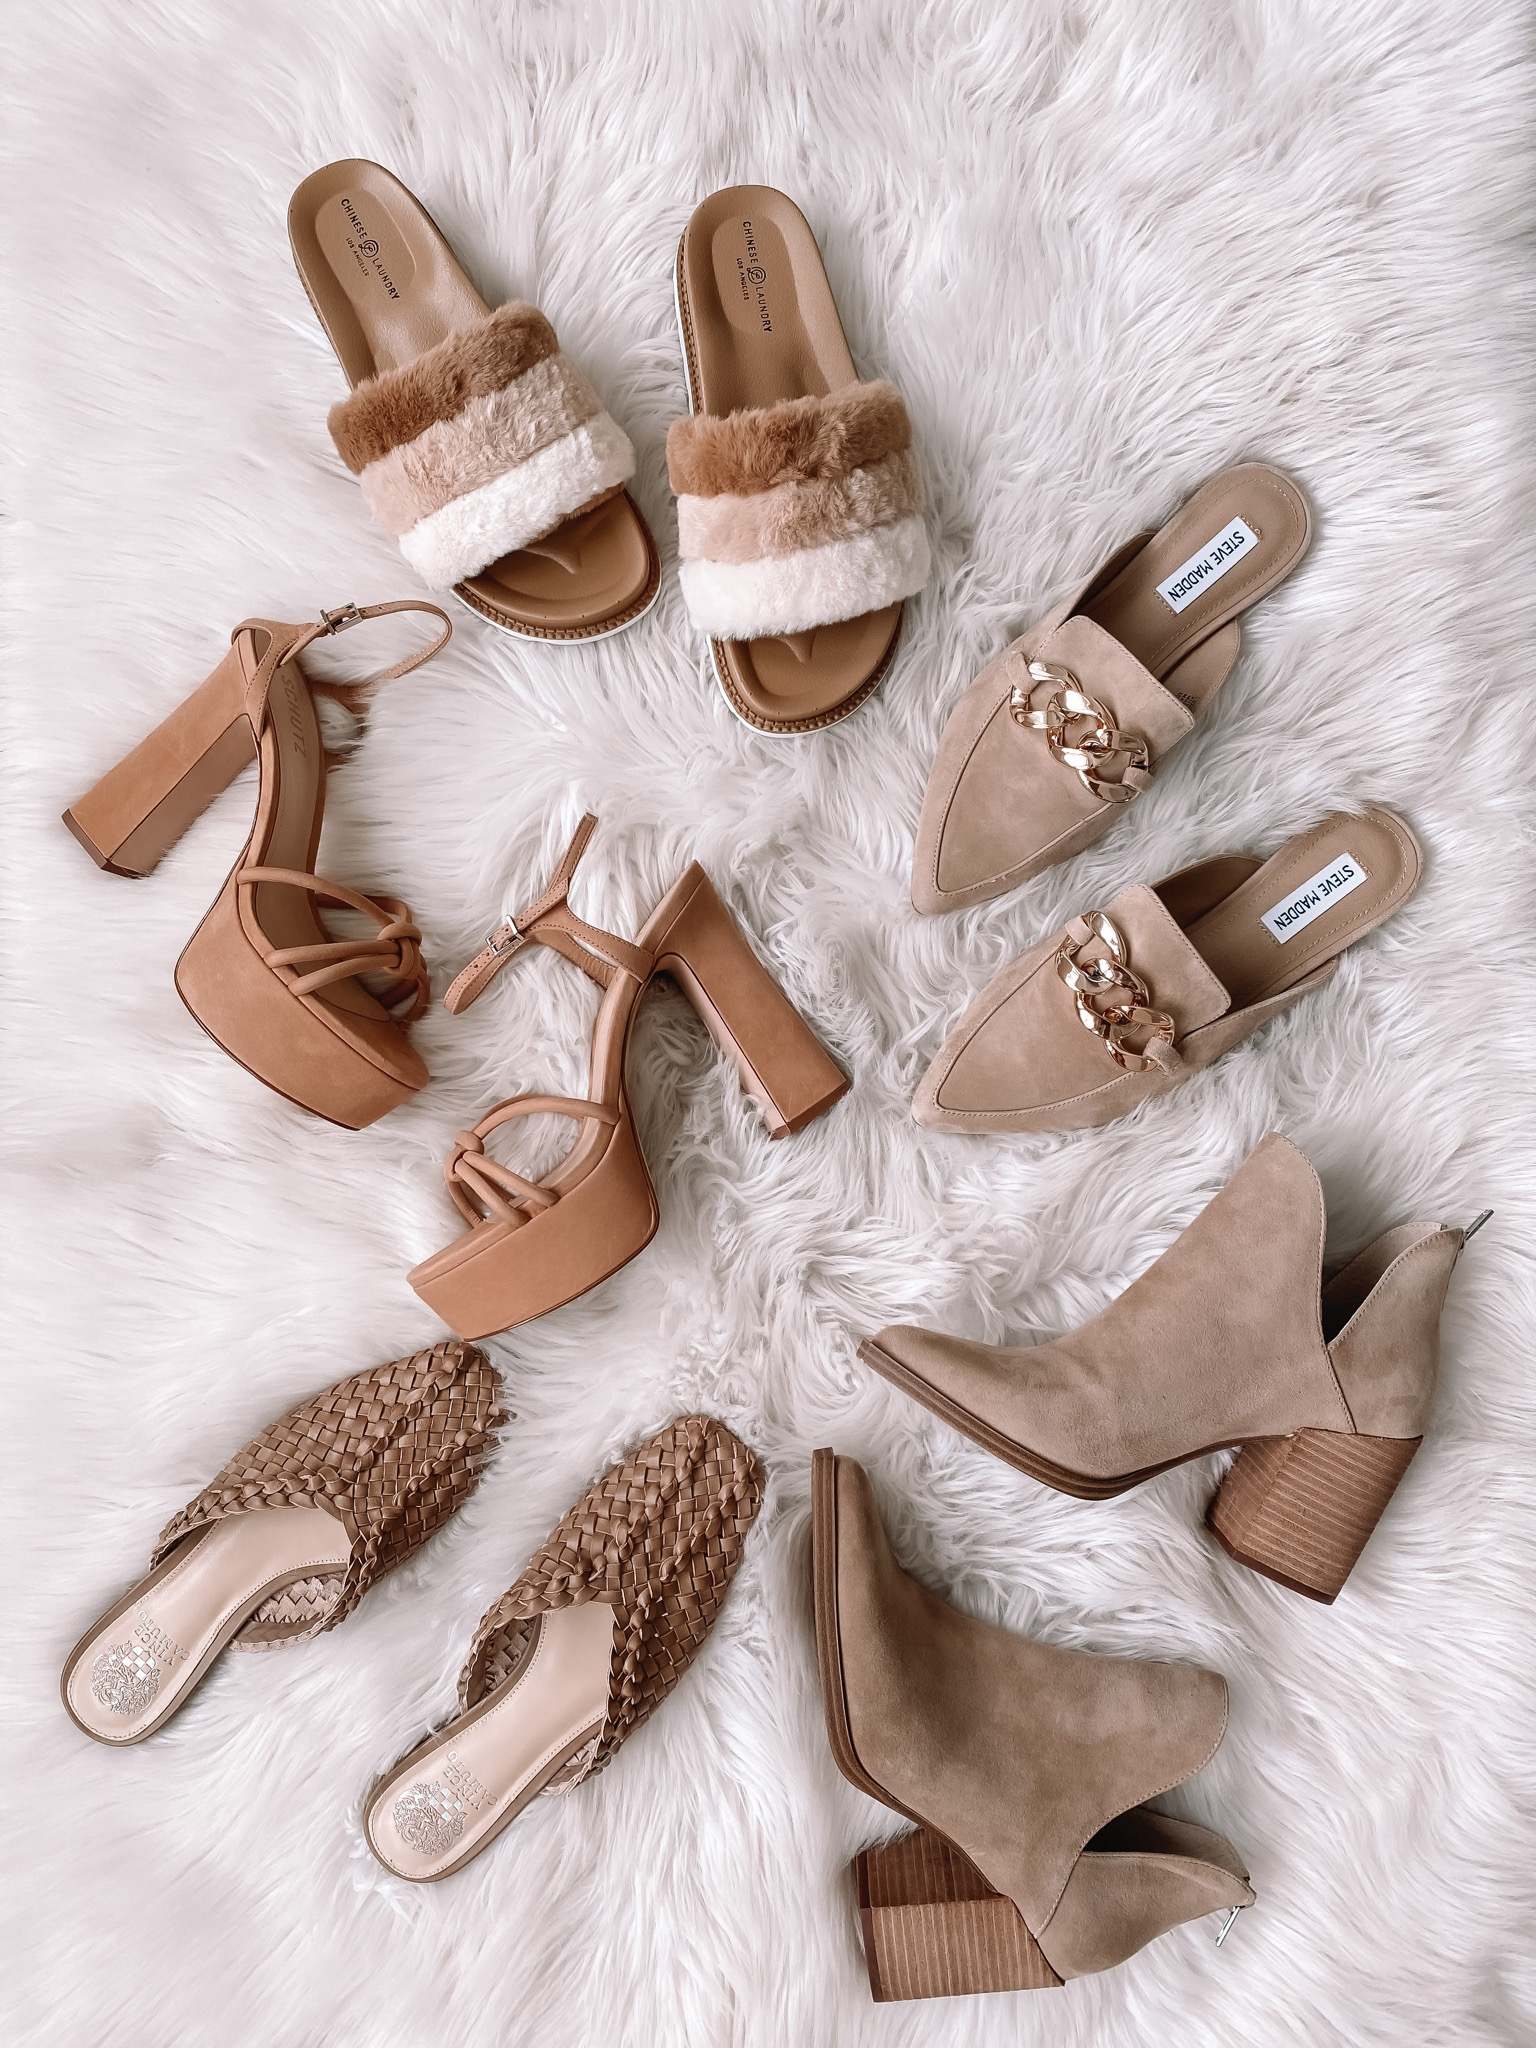 Nordstrom Anniversary Sale 2021 – Shoes